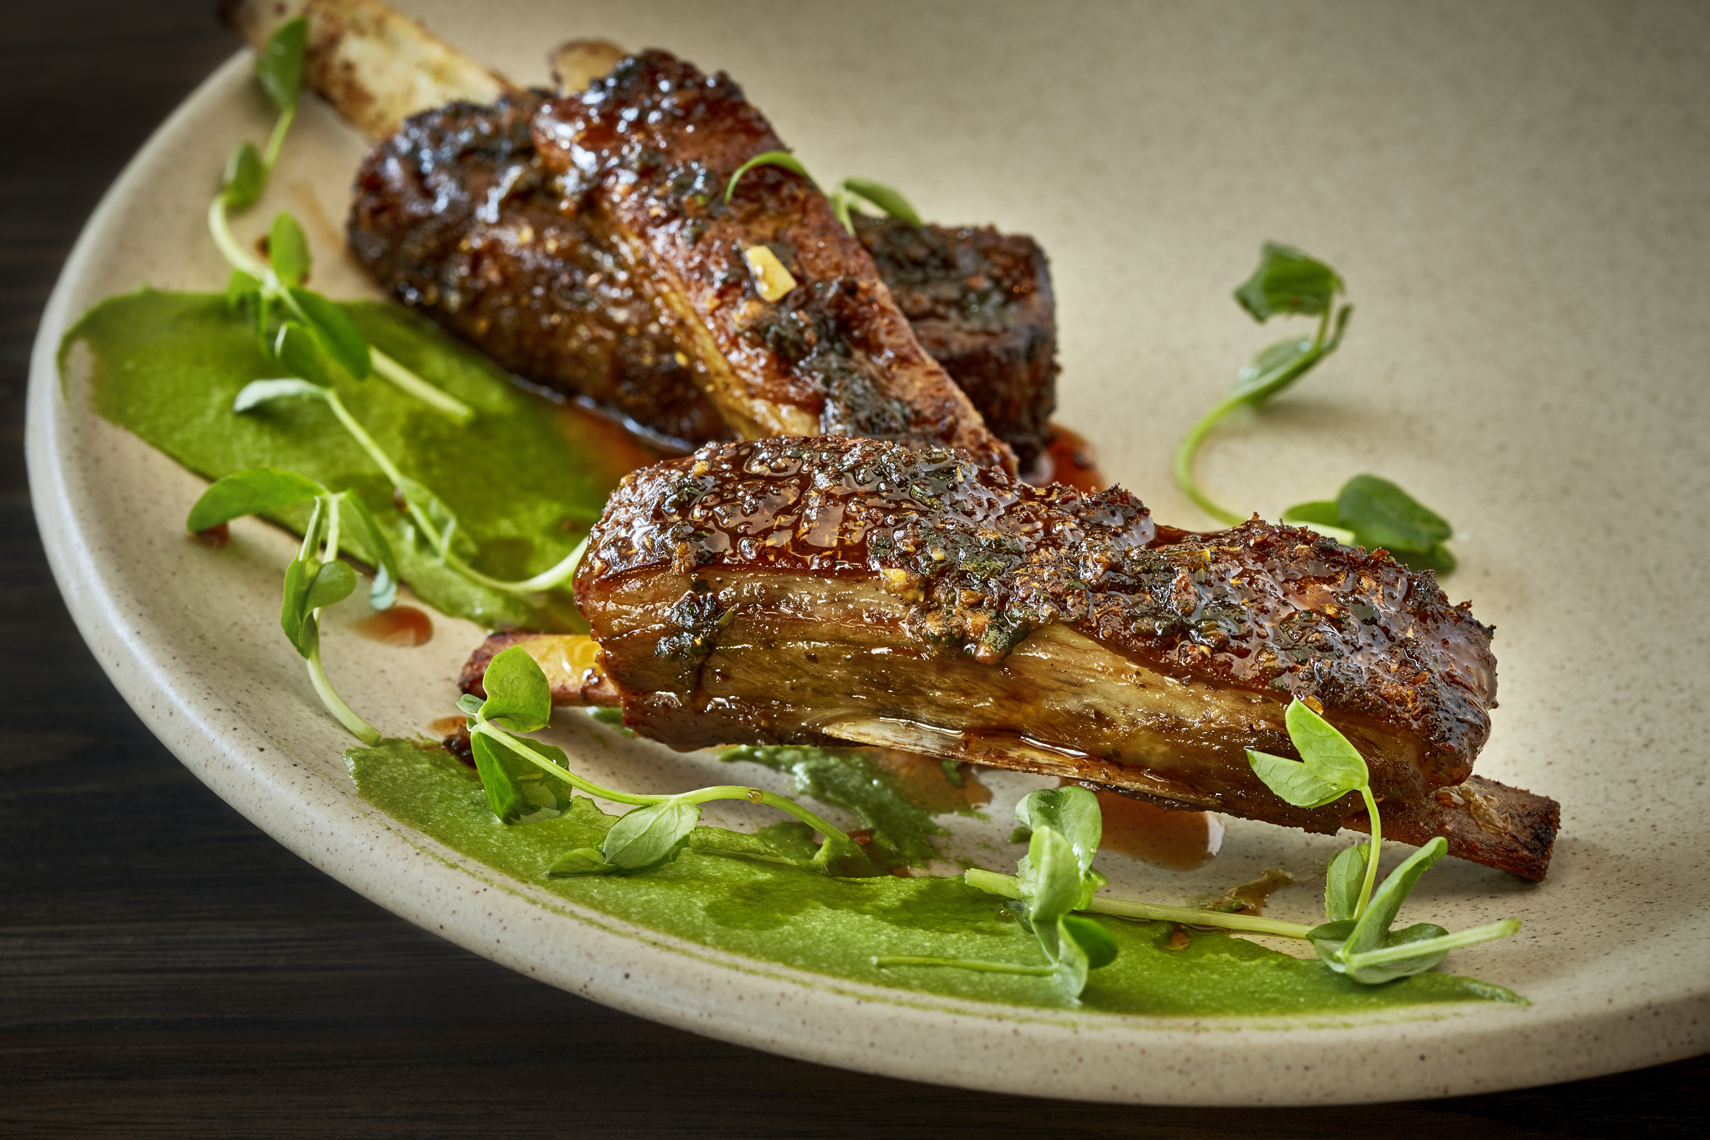 FOOD-DiningOut6-Chermoula-Lamb-Ribs